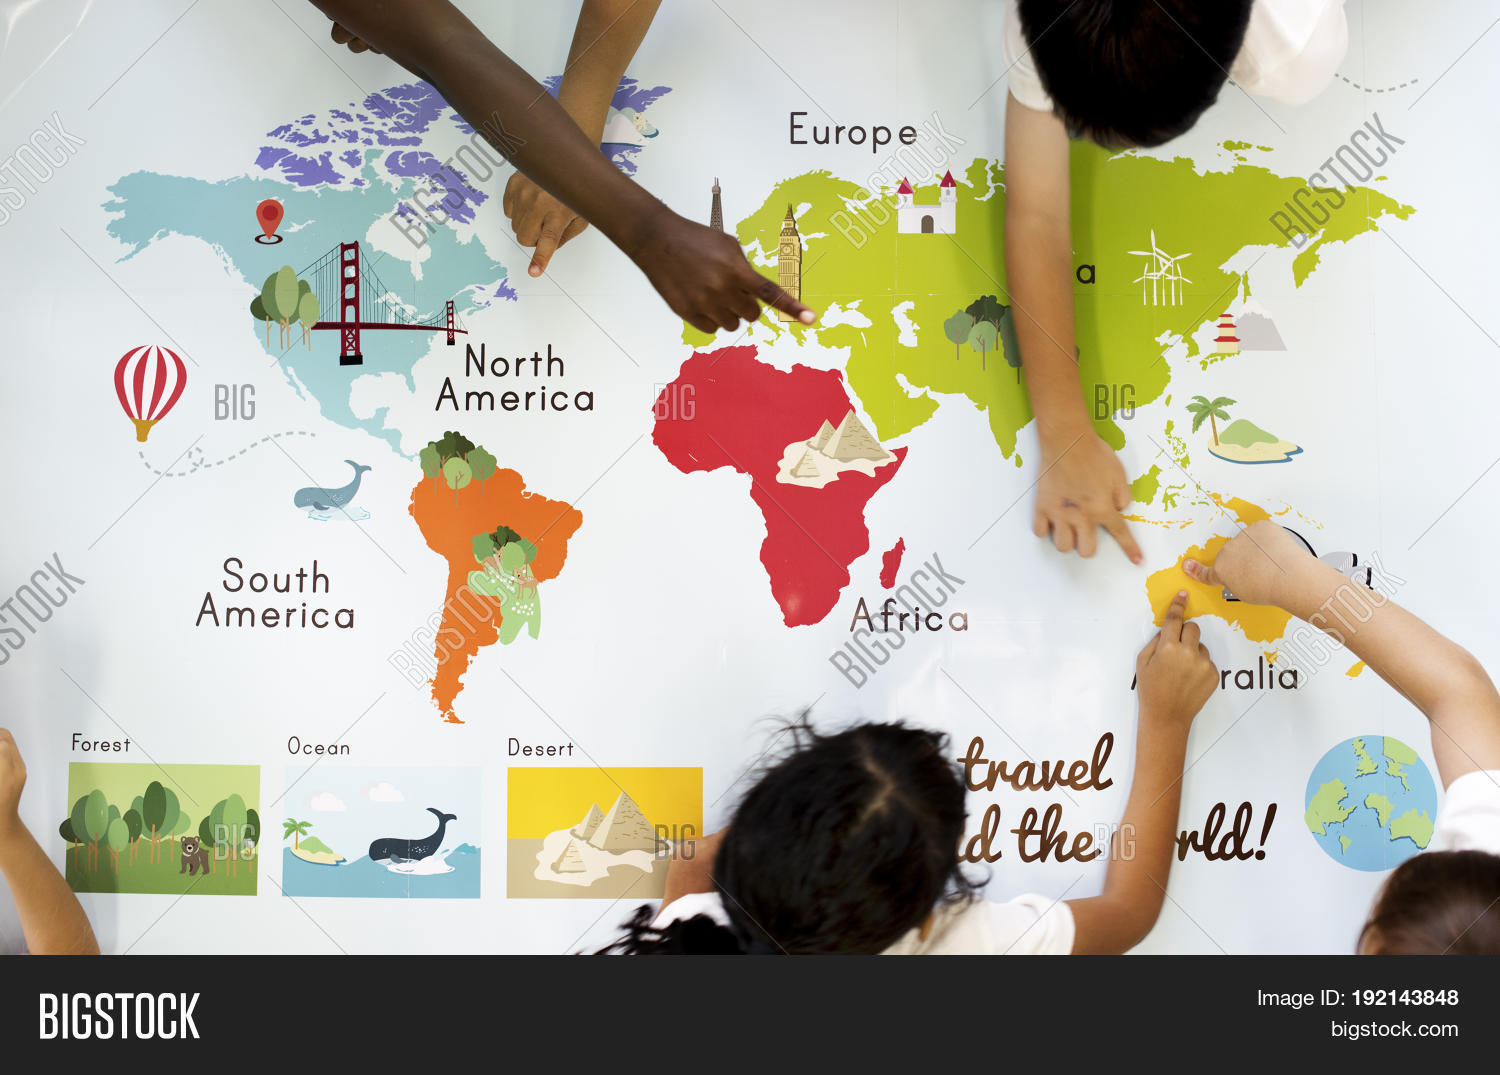 Kids learning world image photo free trial bigstock kids learning world map with continents countries ocean geography gumiabroncs Gallery